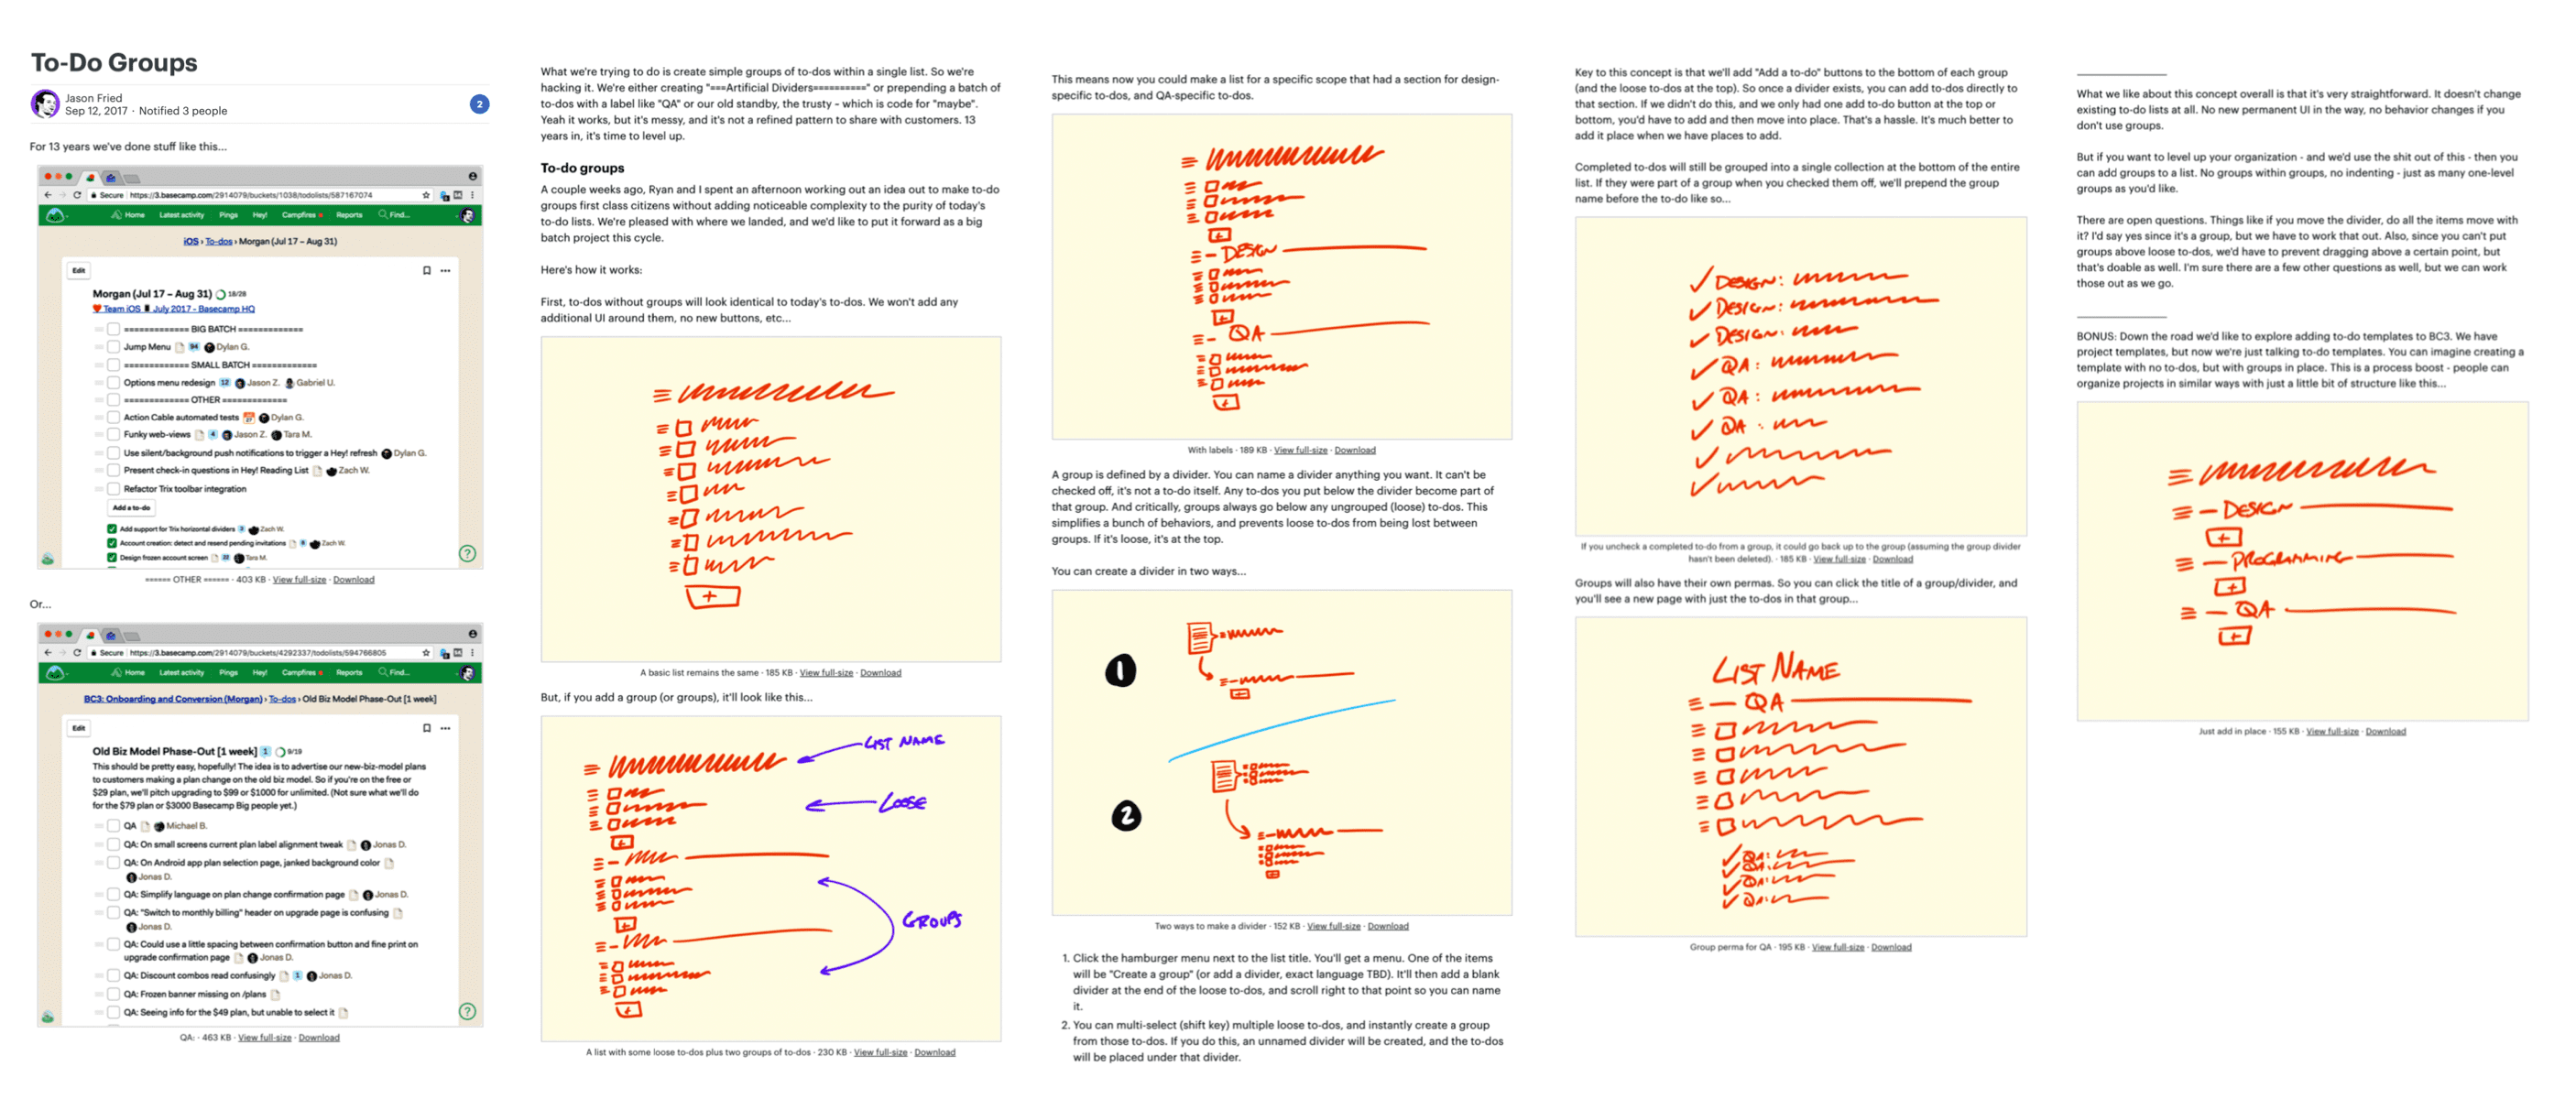 A scaled-down screenshot of a full pitch for the To-Dos feature. It looks like a document. The document starts with two screenshots demonstrating the workaround for grouping to-dos without the feature. Then five fat marker sketches follow that show the shaped idea. Paragraphs of explanatory text surround each sketch.